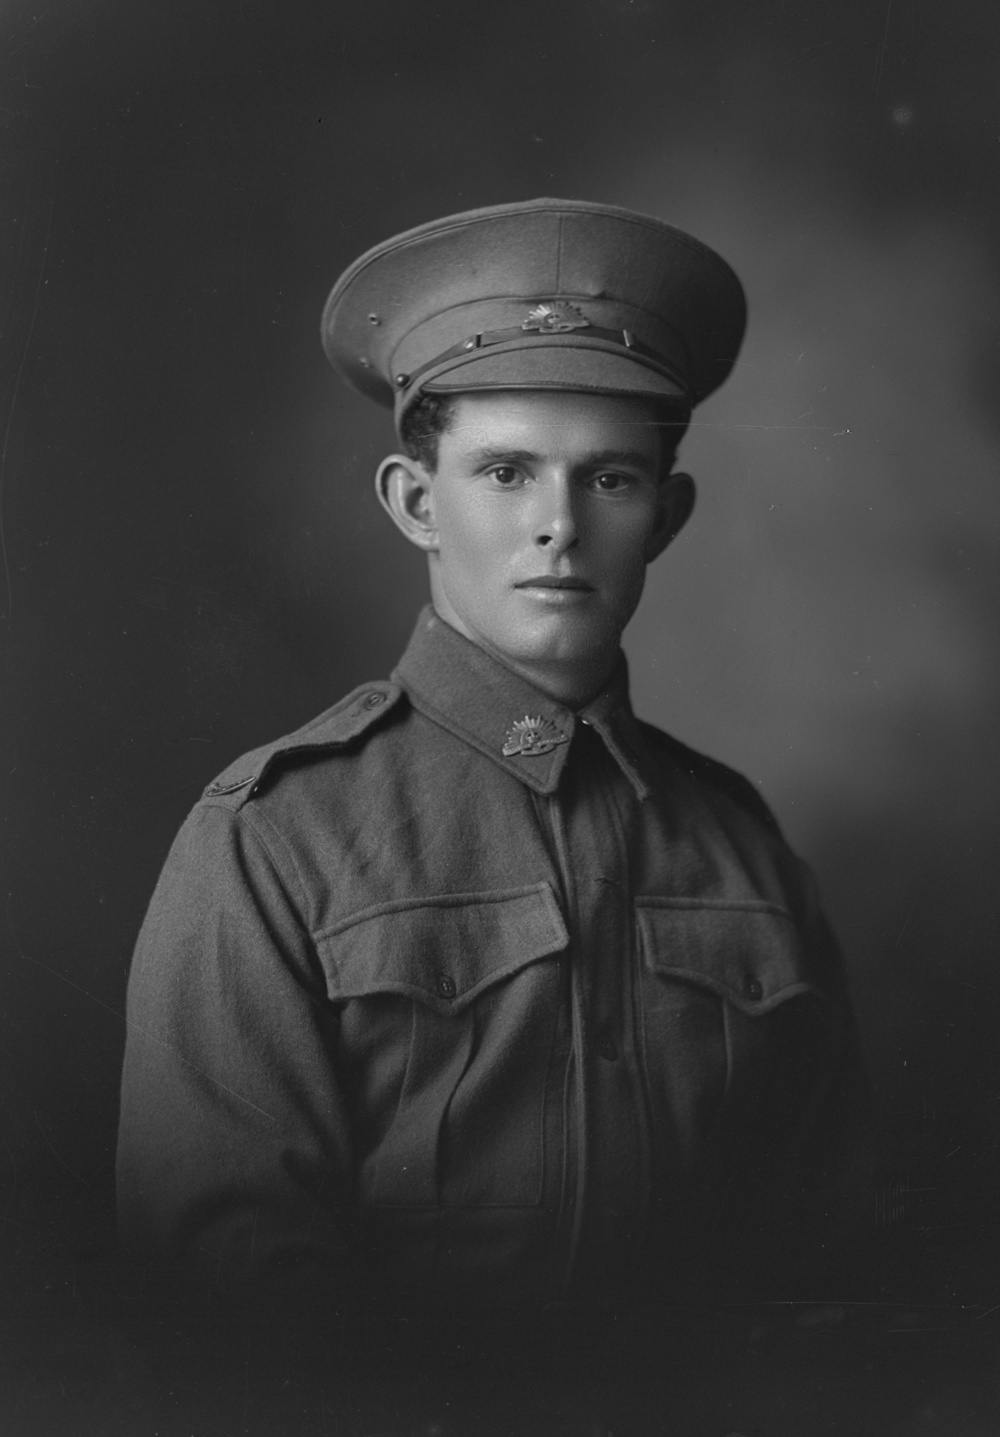 Photographed at the Dease Studio, 117 Barrack Street Perth WA Image courtesy of the State Library of Western Australia: 108414PD